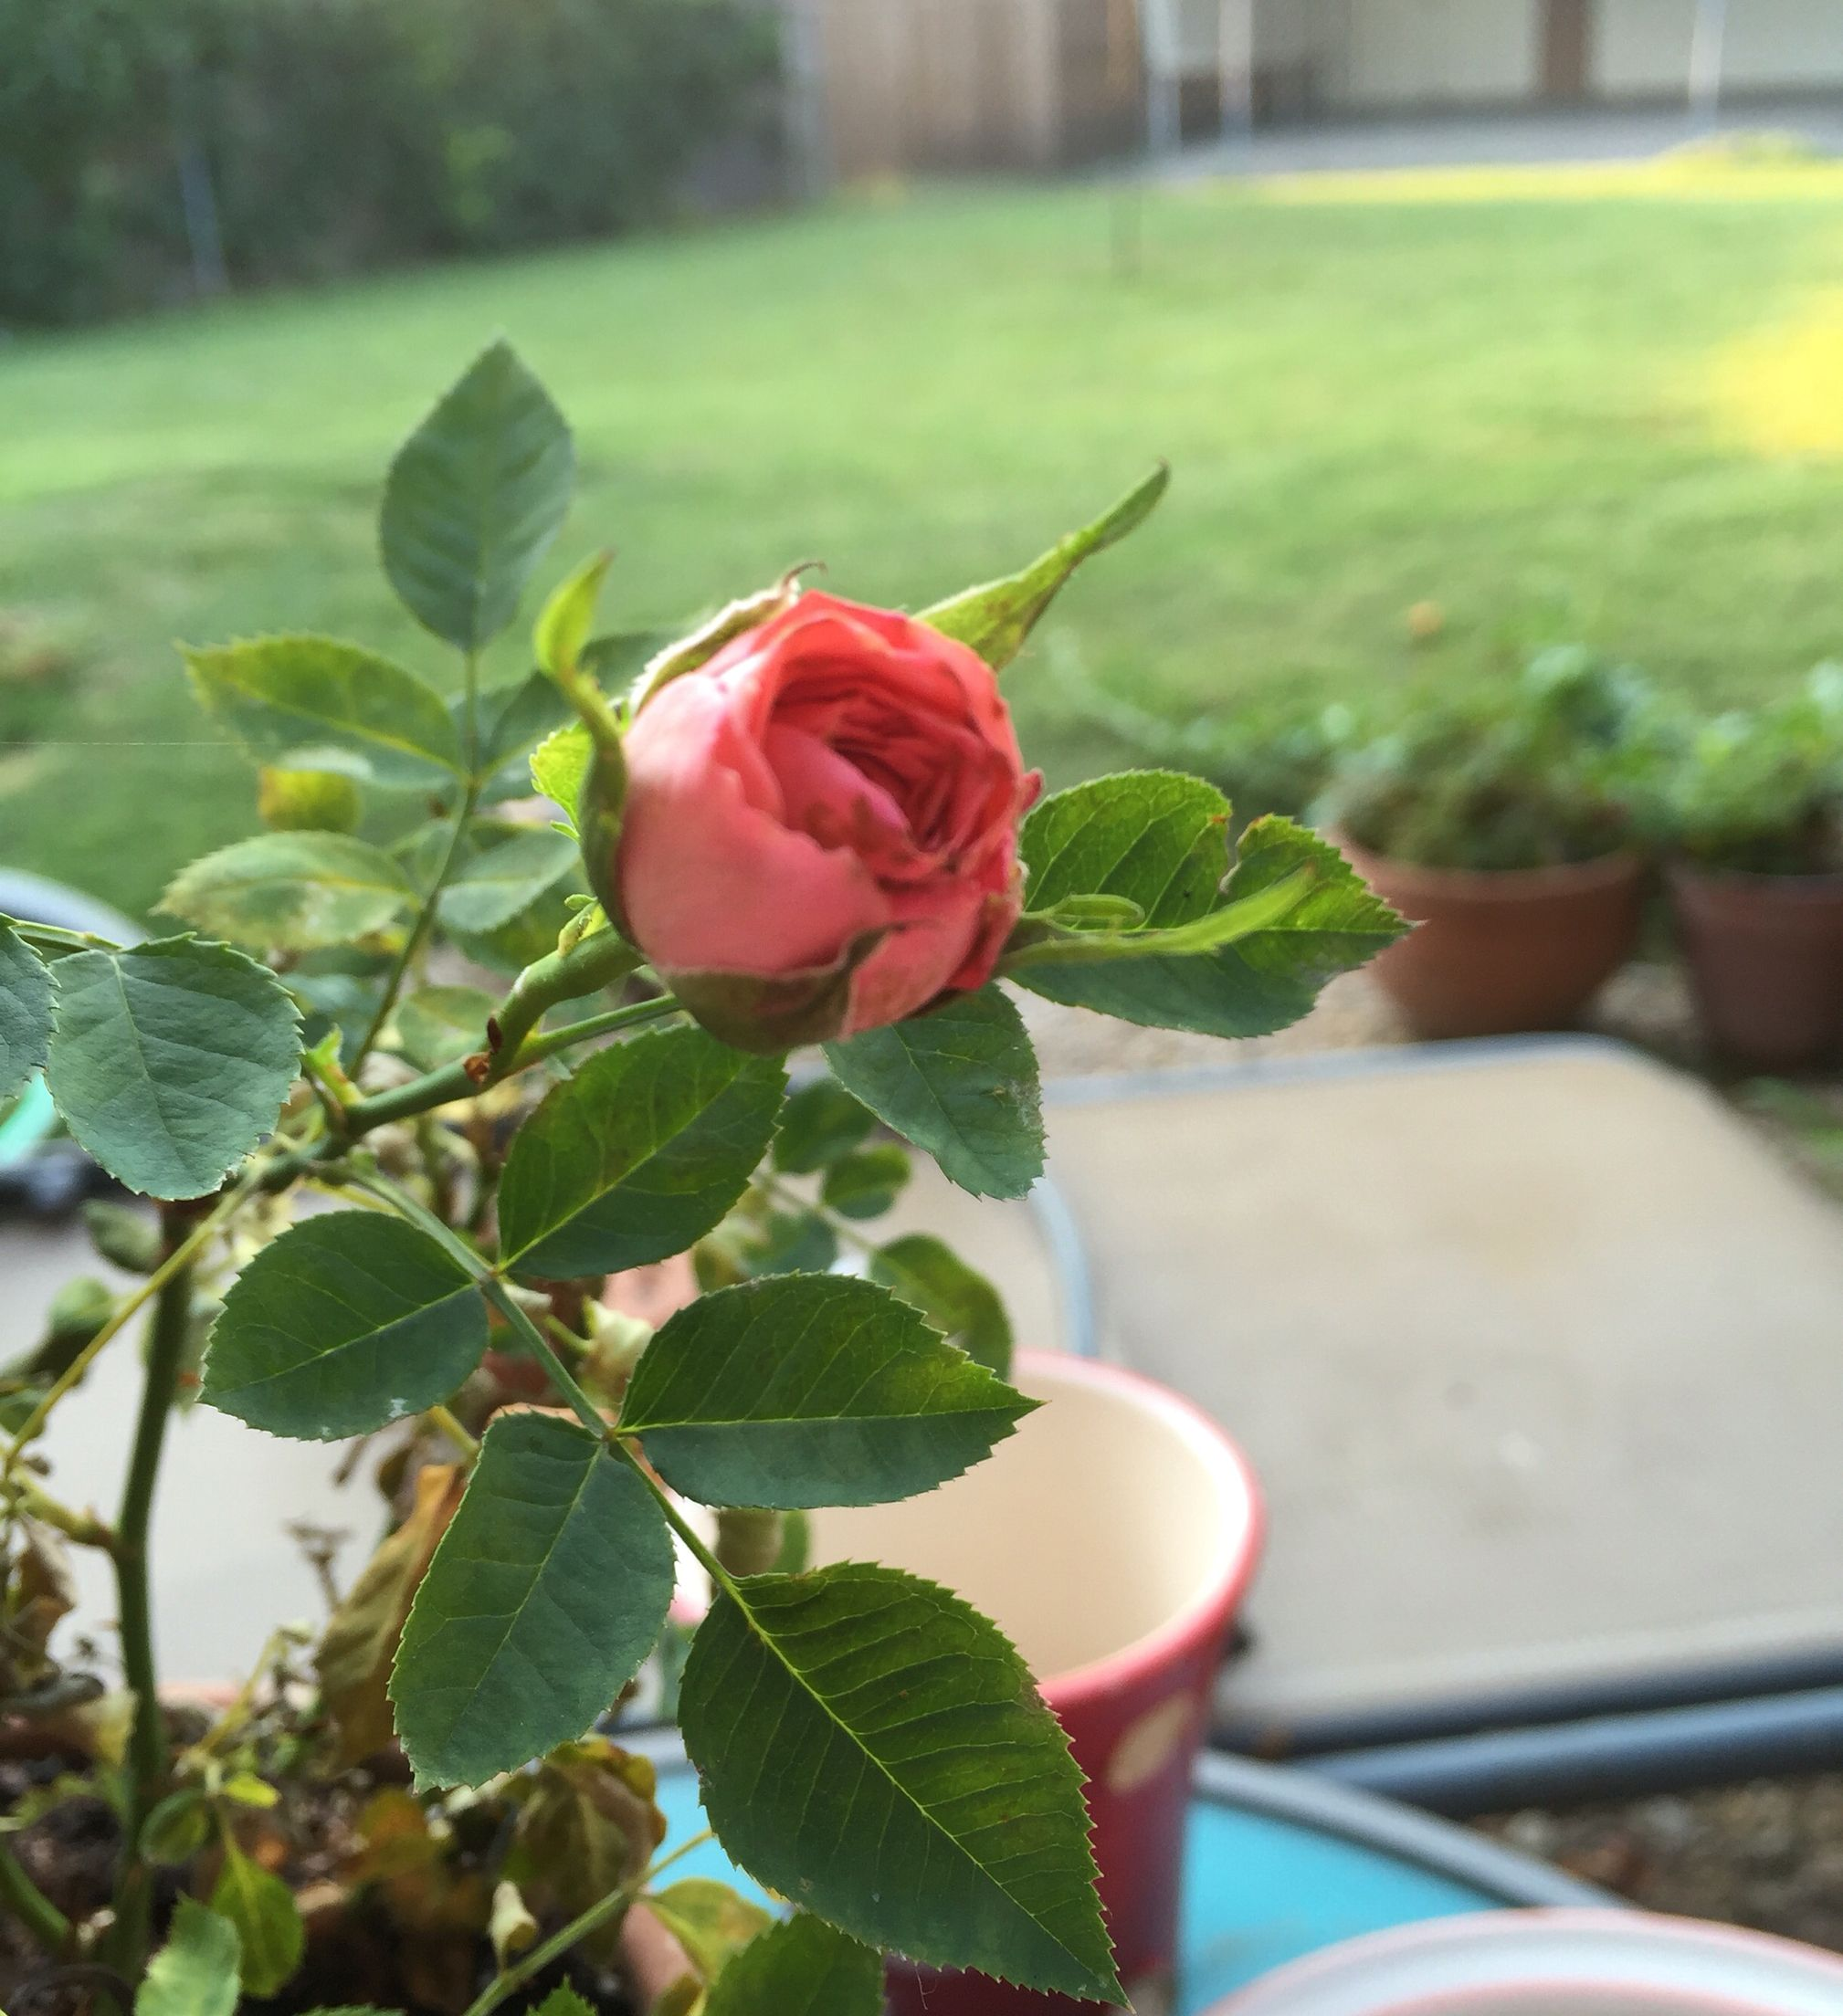 Parade Rose In Bloom With Images Plants Garden